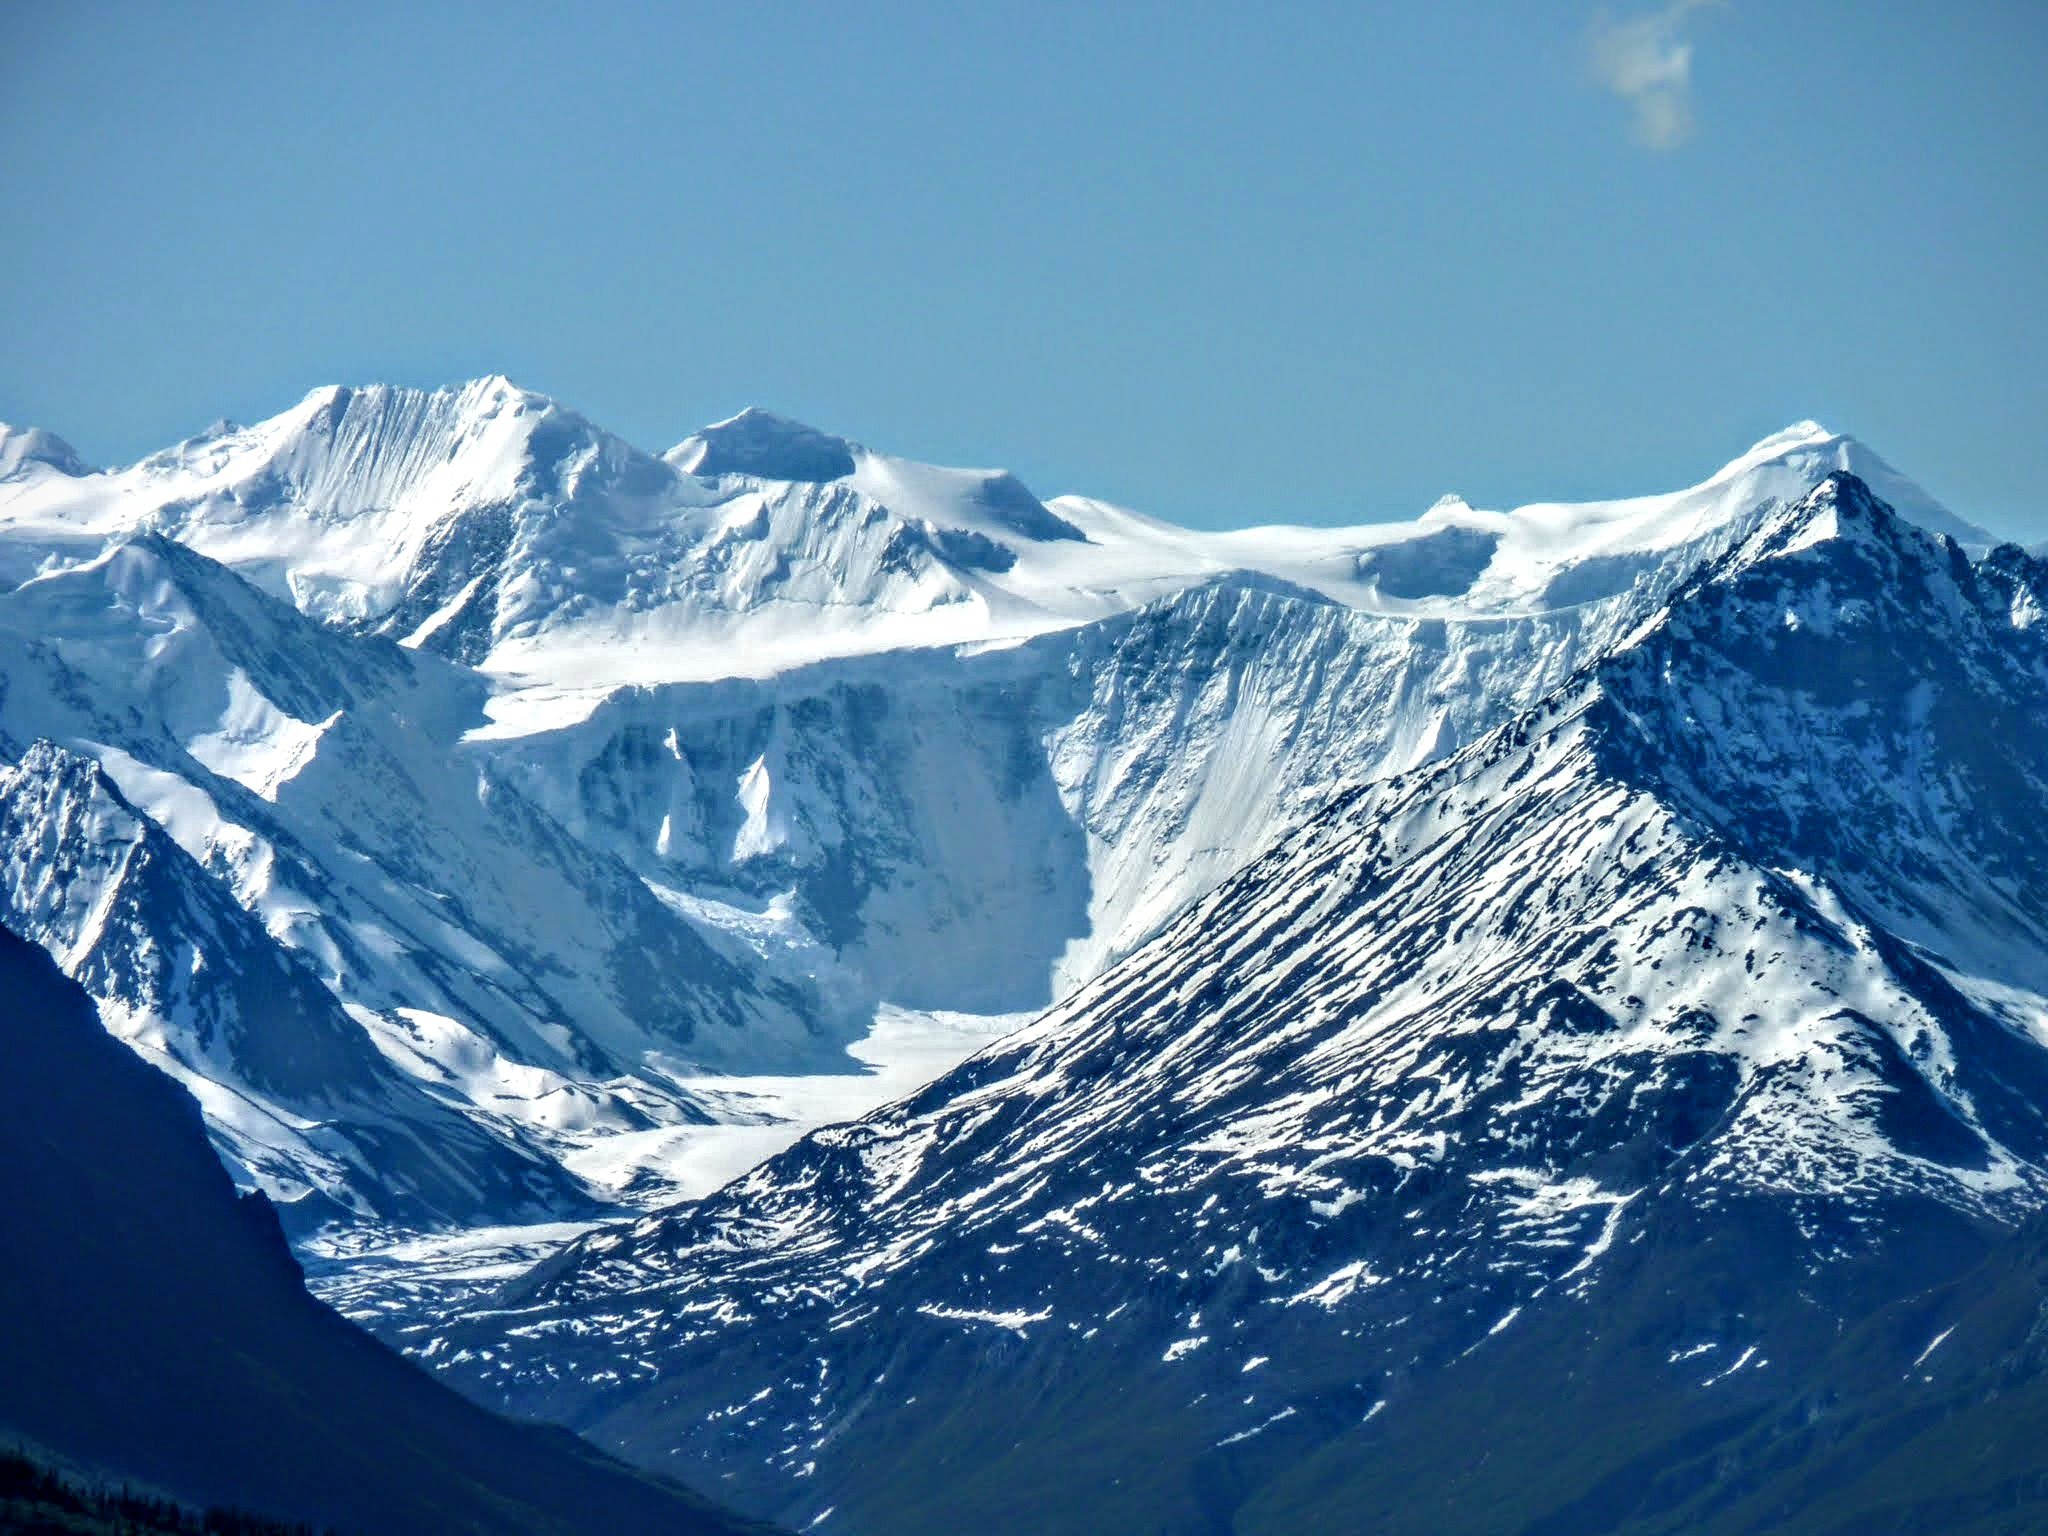 Photo: Awesome Chugach Range peaks across the valley.